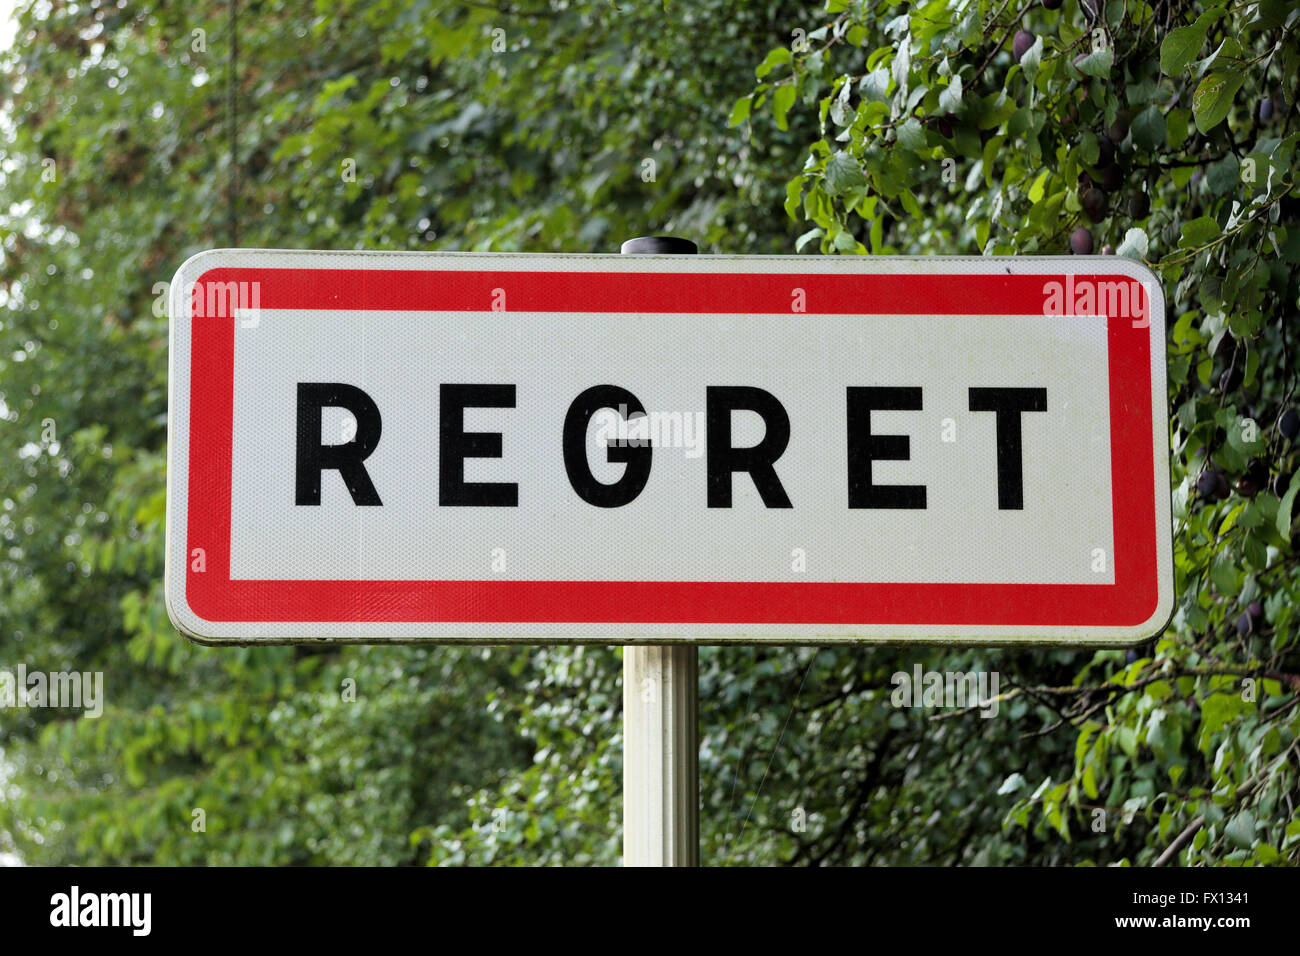 Road sign for the French village of Regret, Verdun, France. - Stock Image